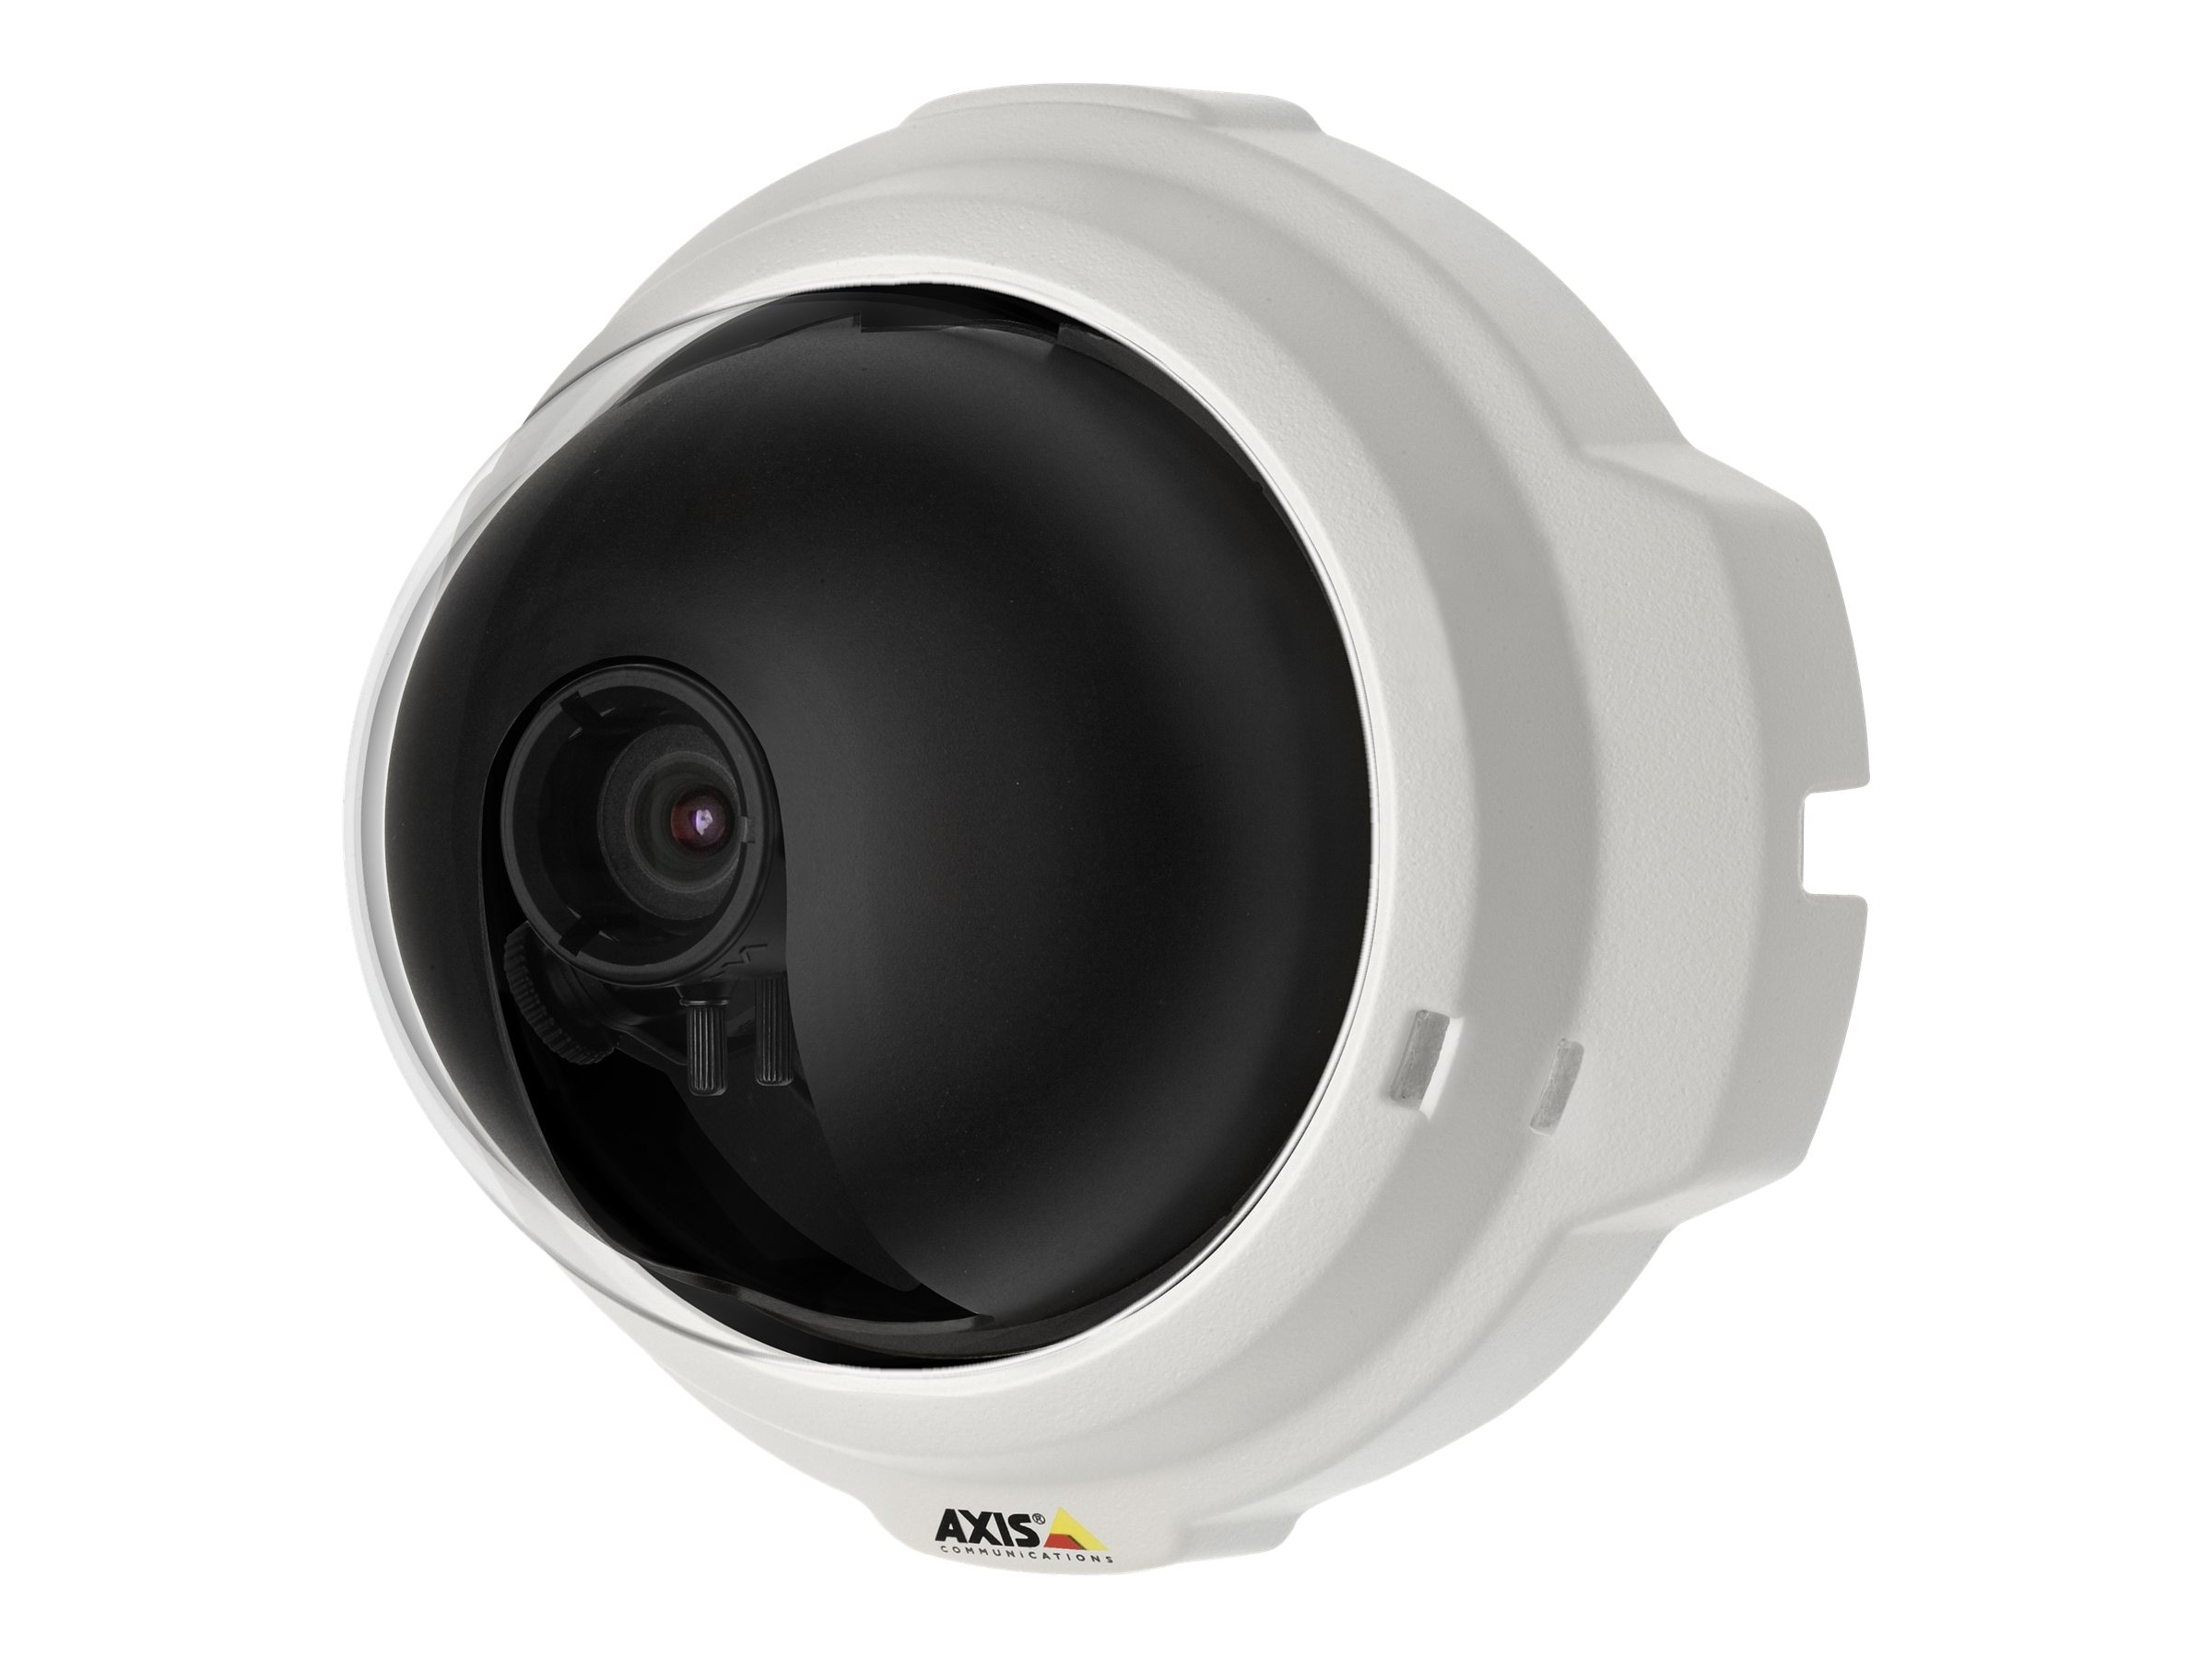 Axis M3204-V Camera, 10-Pack, 0346-021, 11547271, Cameras - Security